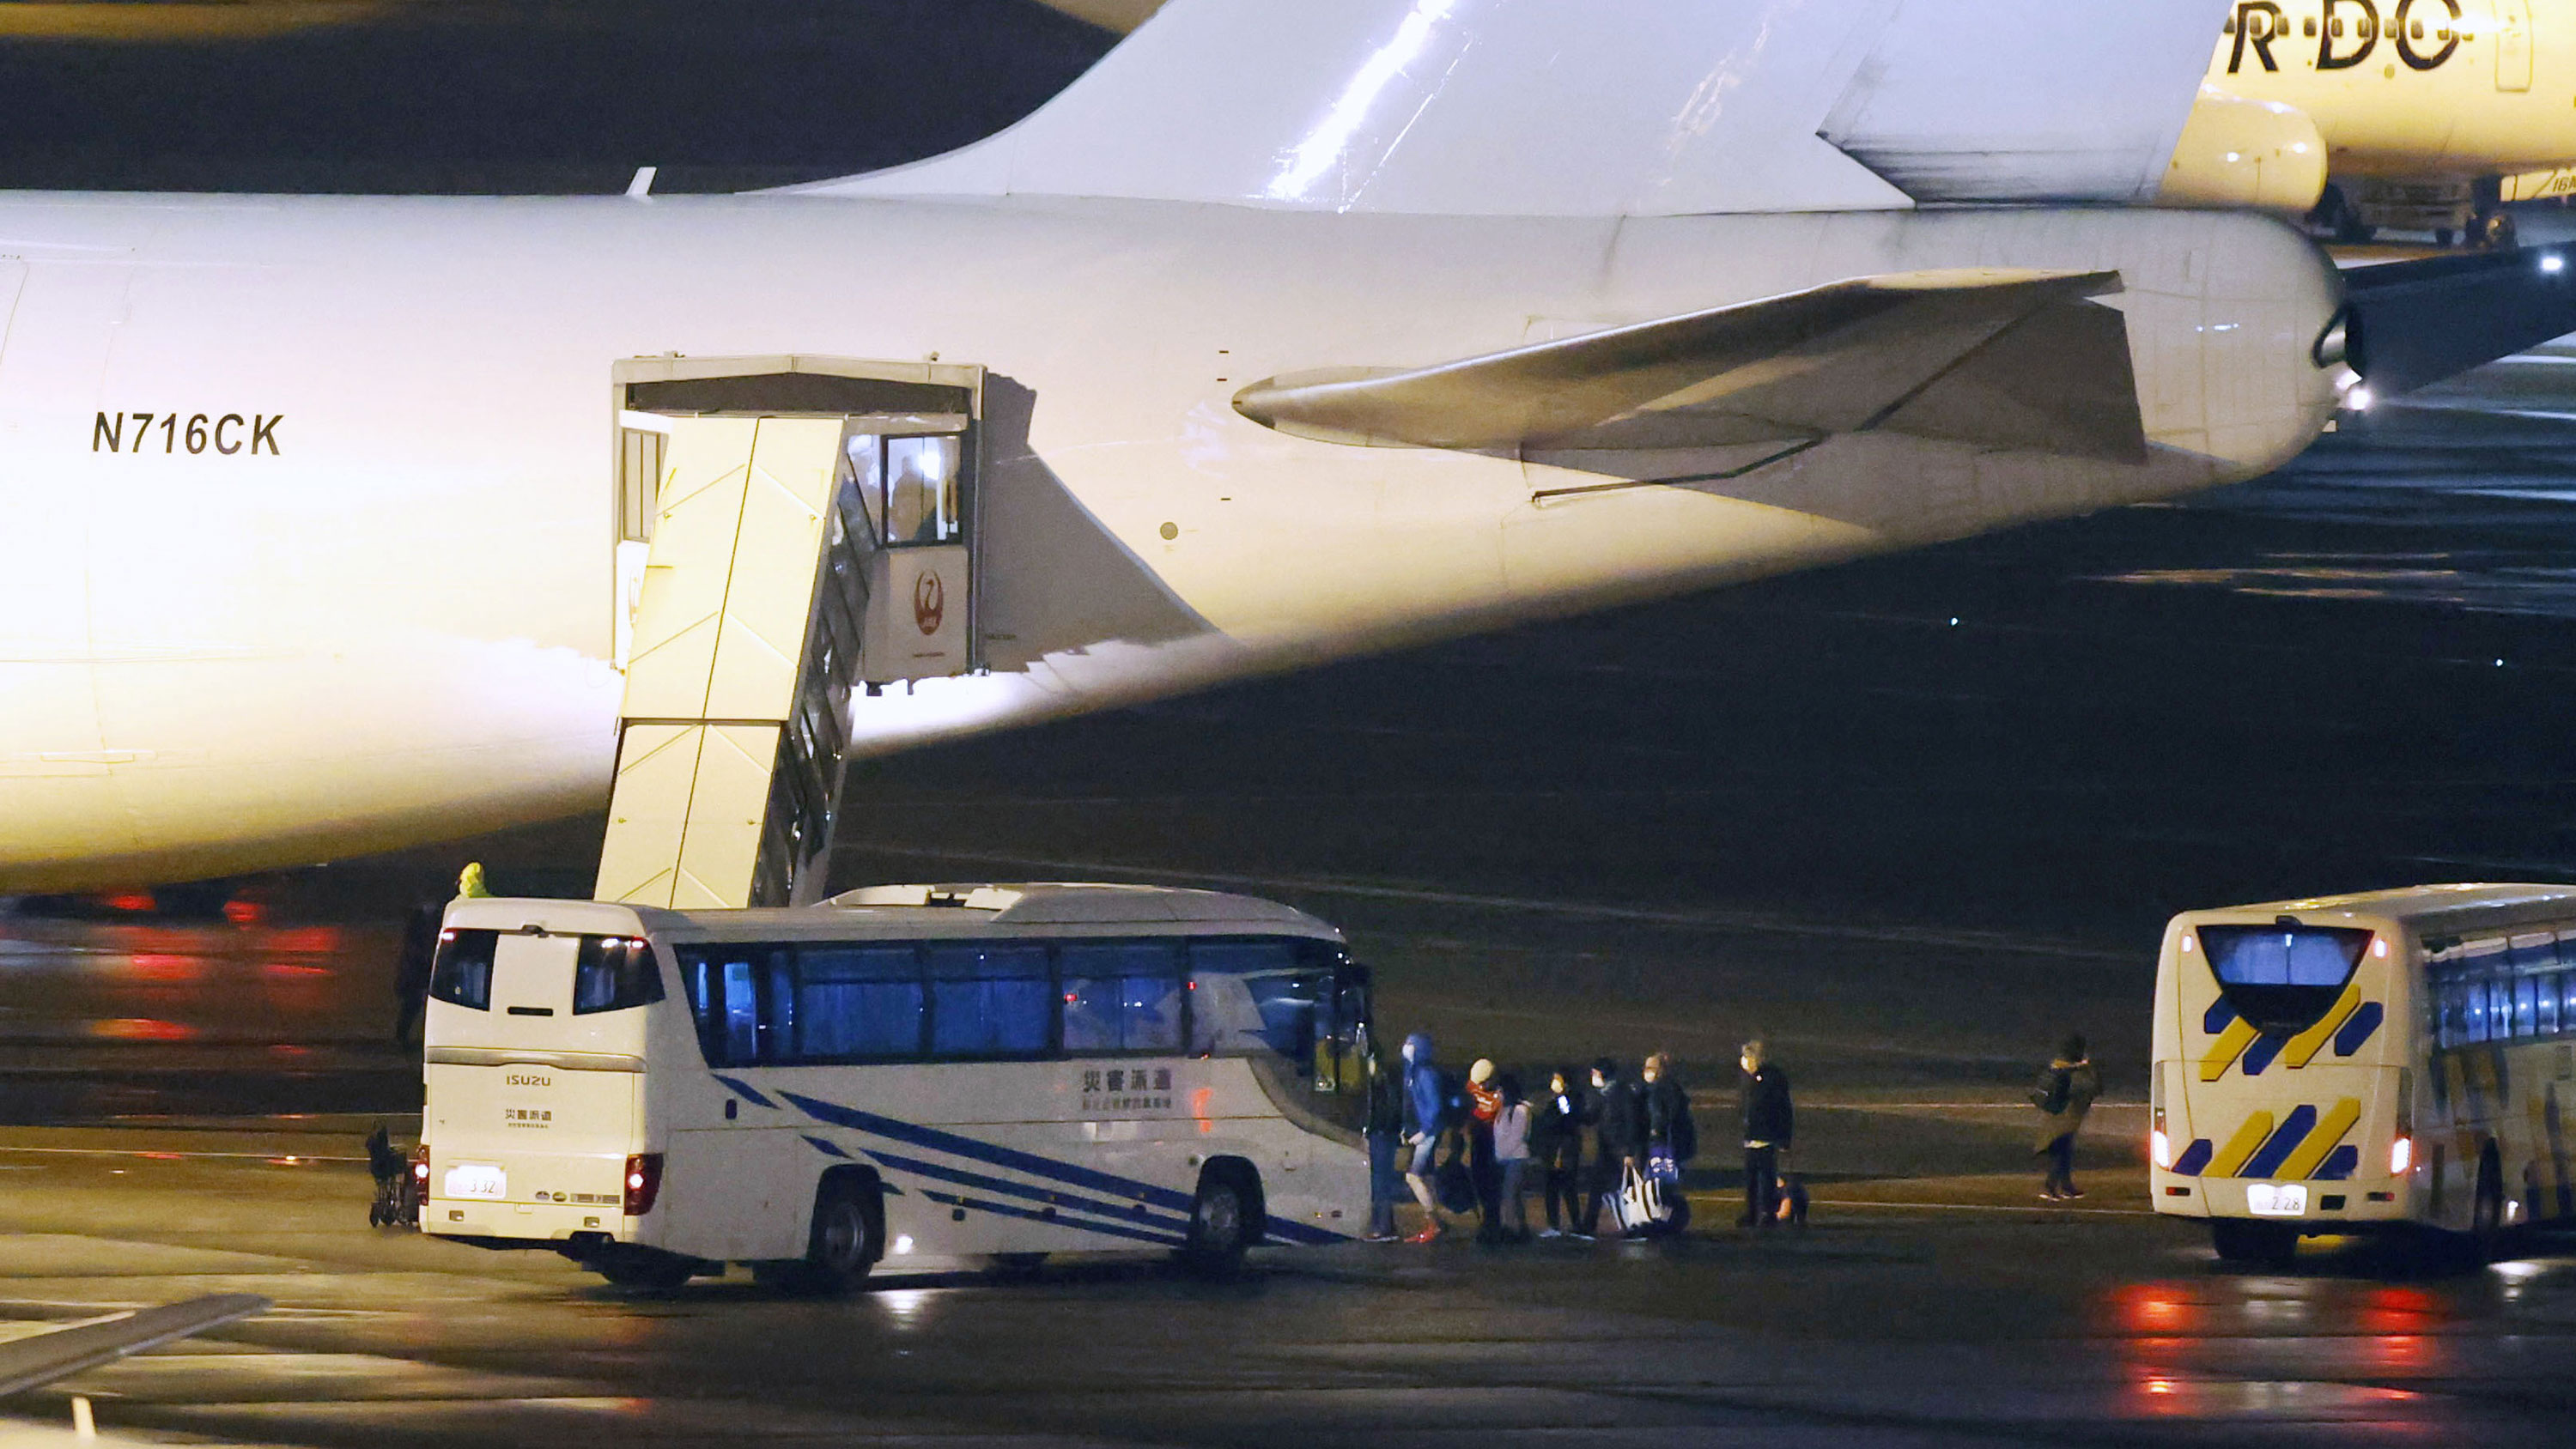 American citizens evacuated from the coronavirus-hit Diamond Princess cruise ship that has been kept in quarantine in Yokohama board a U.S. government-chartered plane at Tokyo's Haneda airport on Monday, February 17.